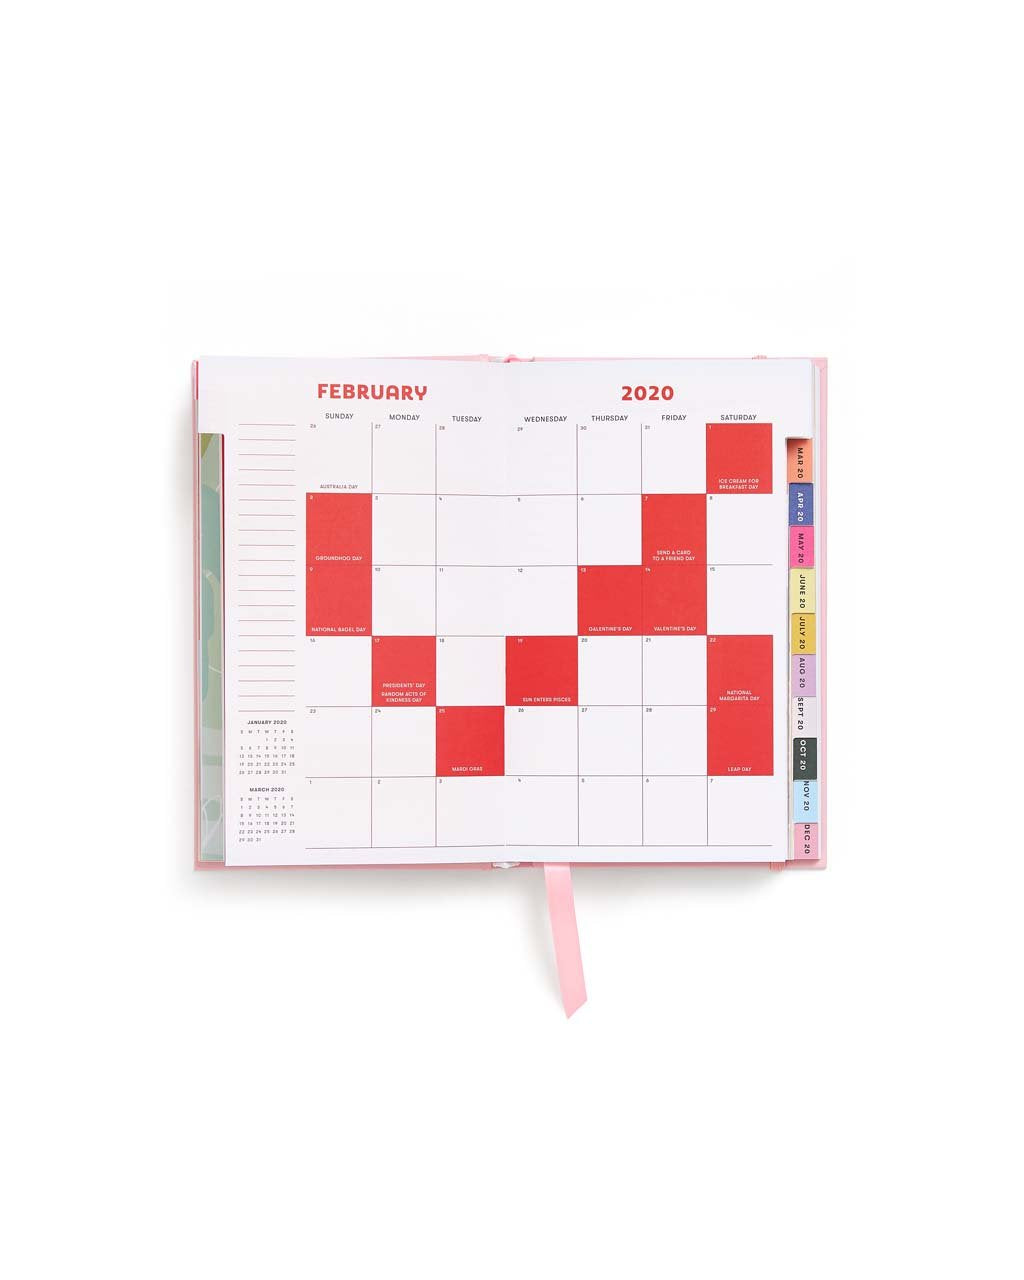 Each month has been assigned its own color that ties into artwork, to-dos, and compliments.